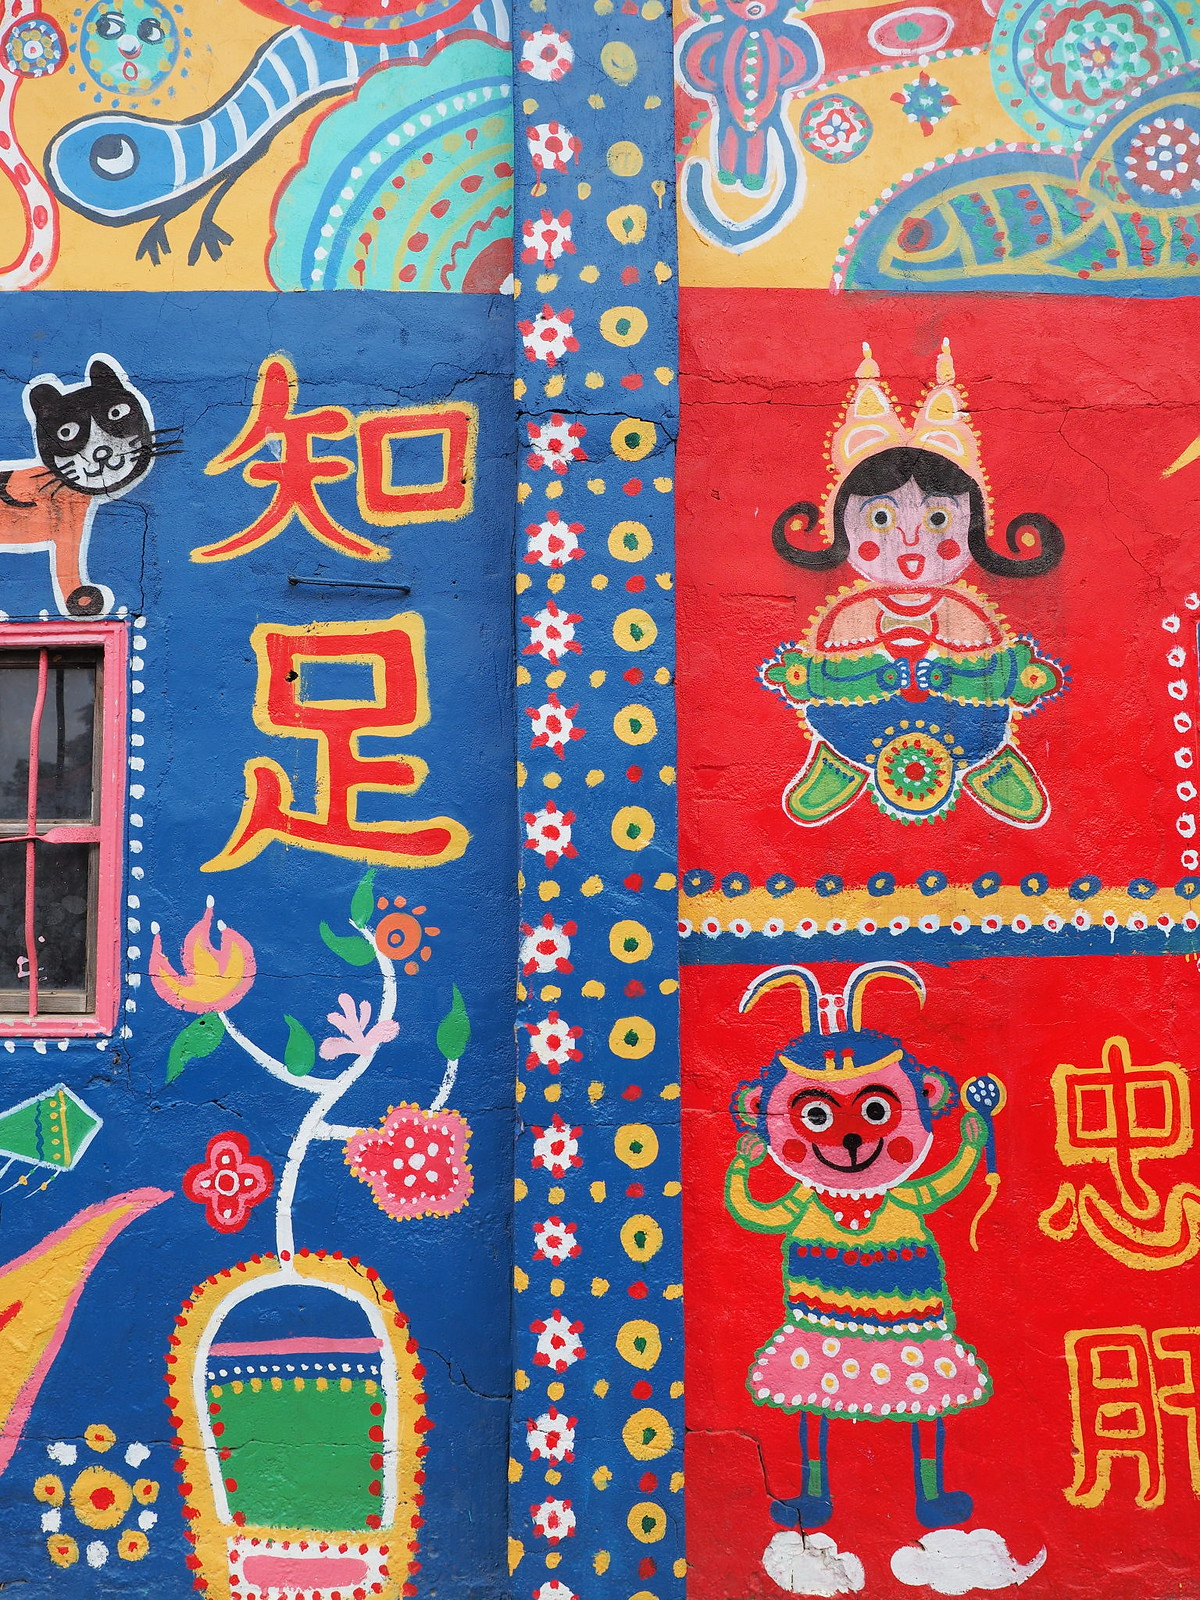 More painting at the Rainbow Village